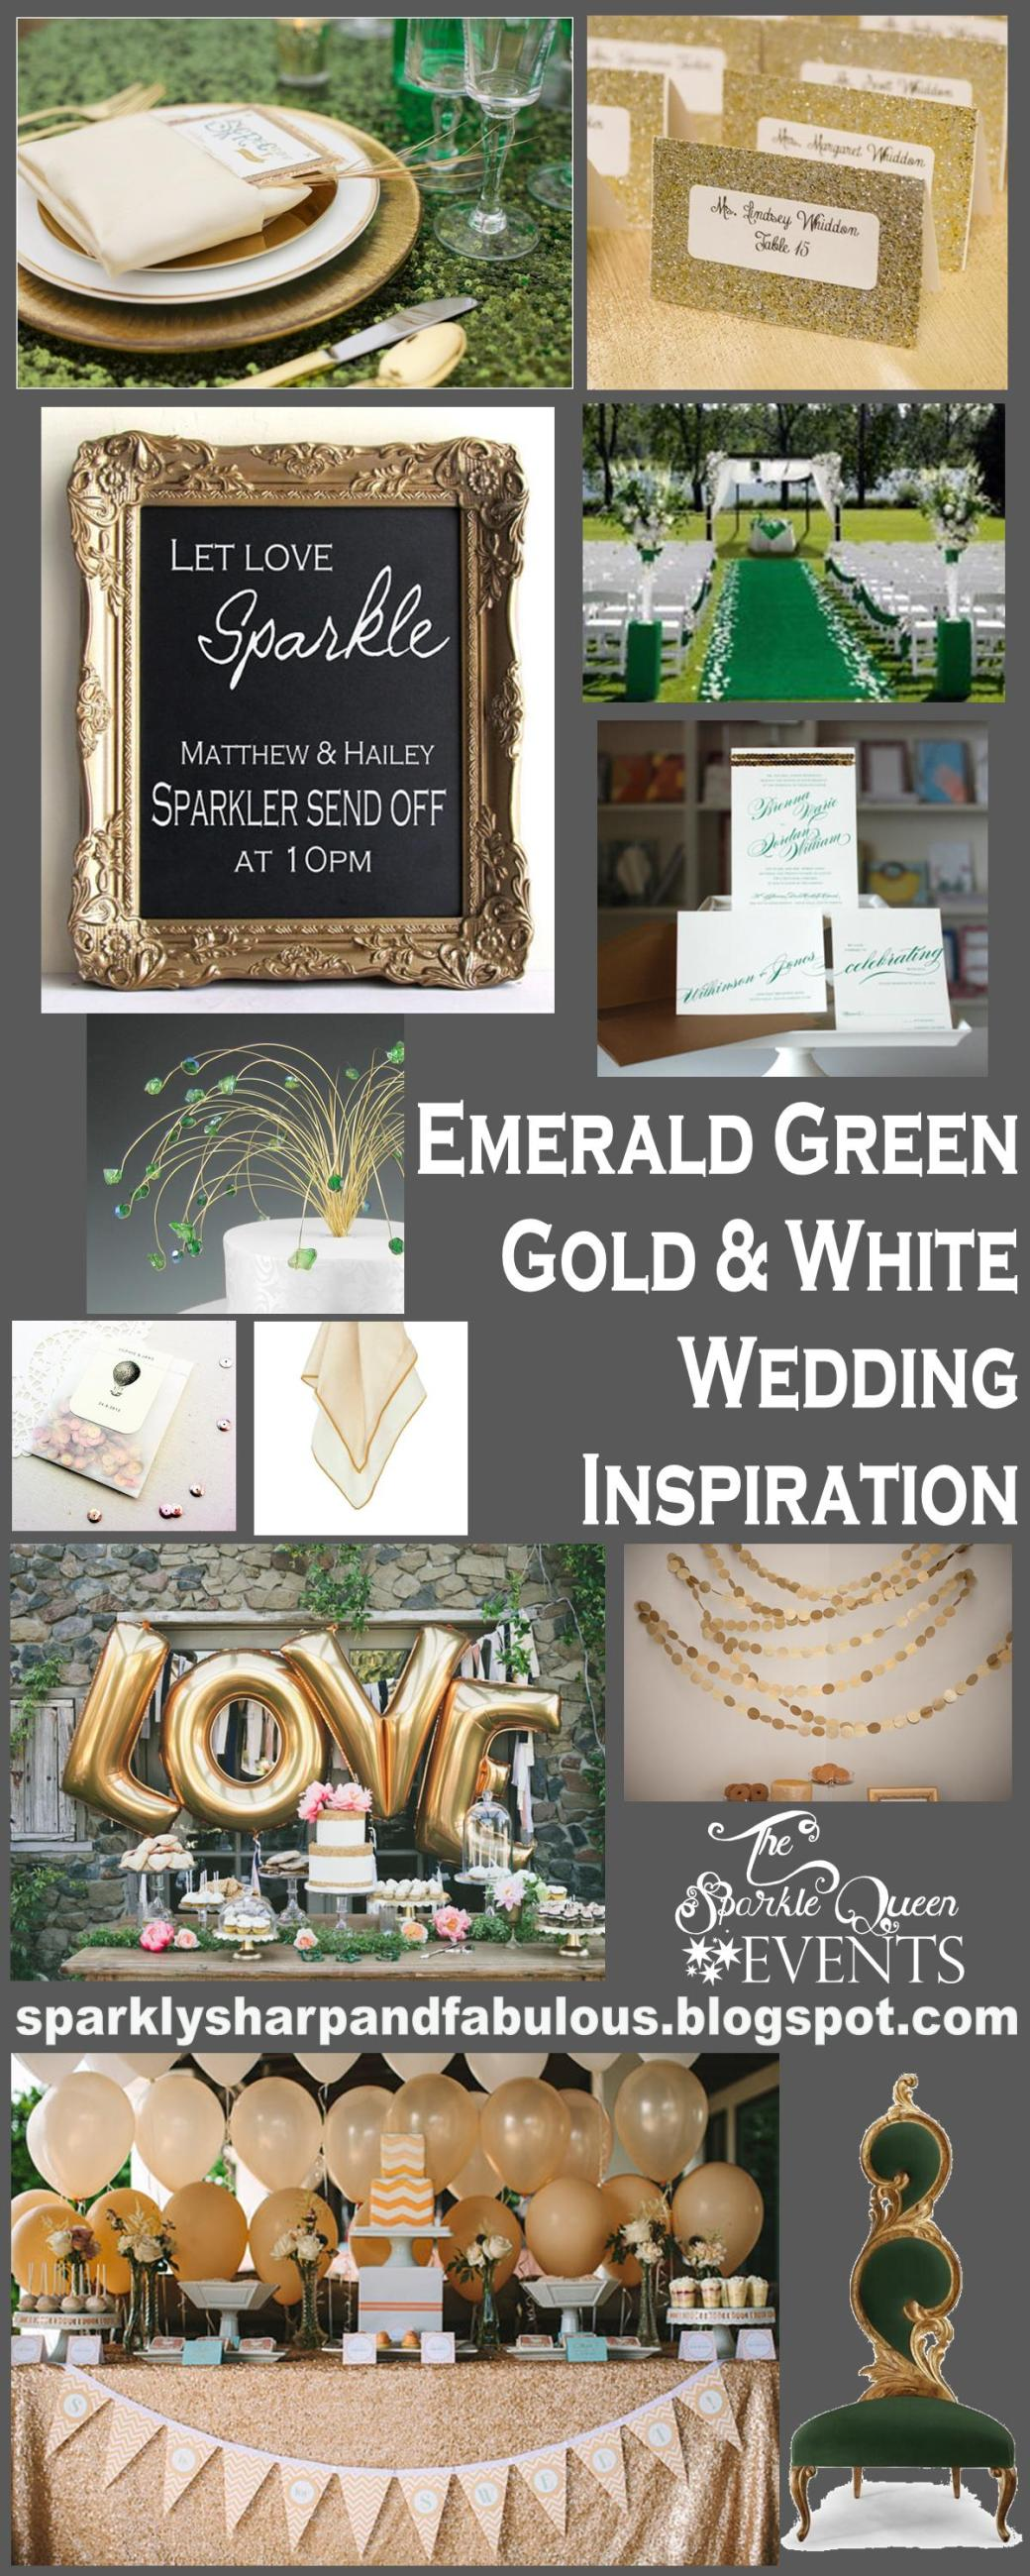 http://sparklysharpandfabulous.blogspot.com/2013/06/emerald-green-gold-and-white-wedding_26.html